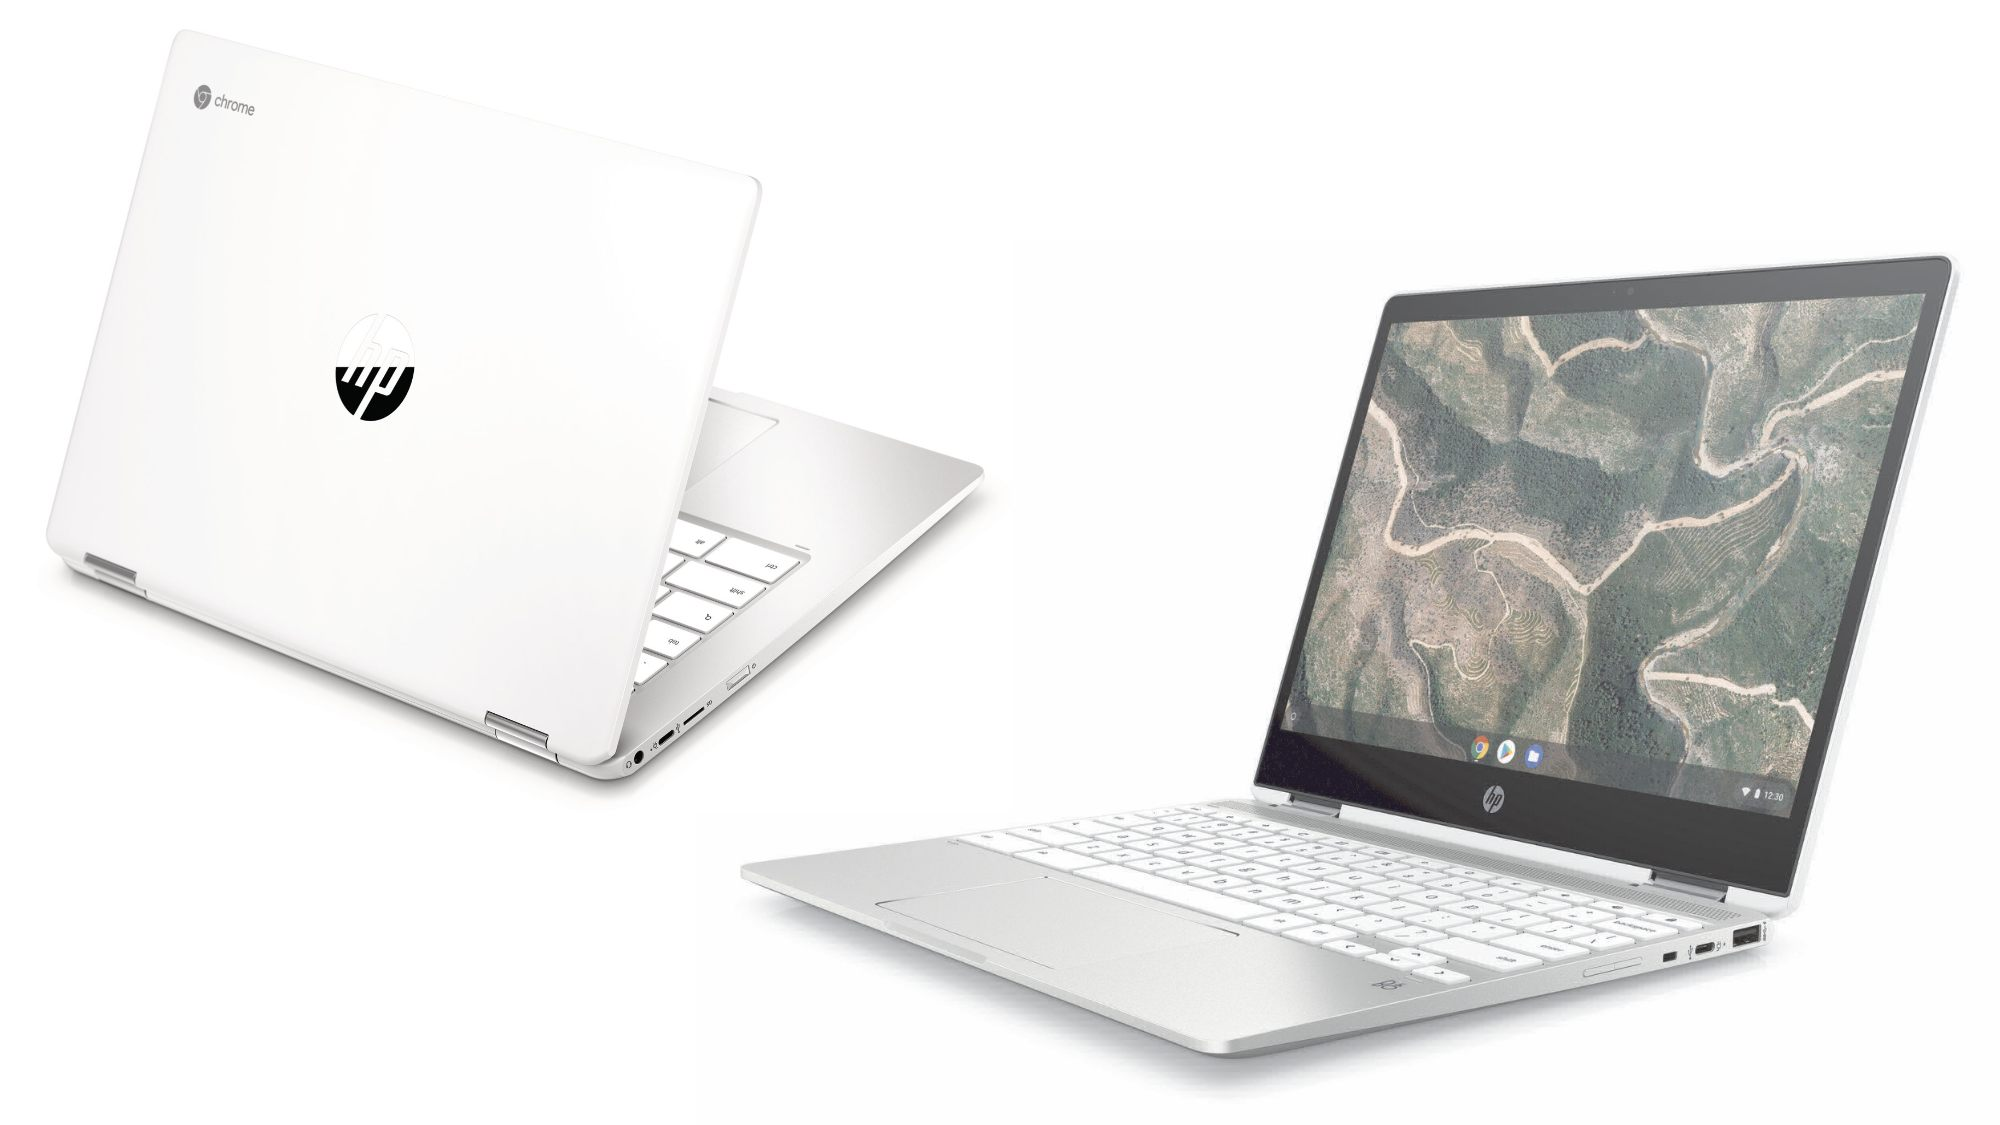 HP announces new Chromebooks with USI stylus, magnetic pen dock, and attractive price